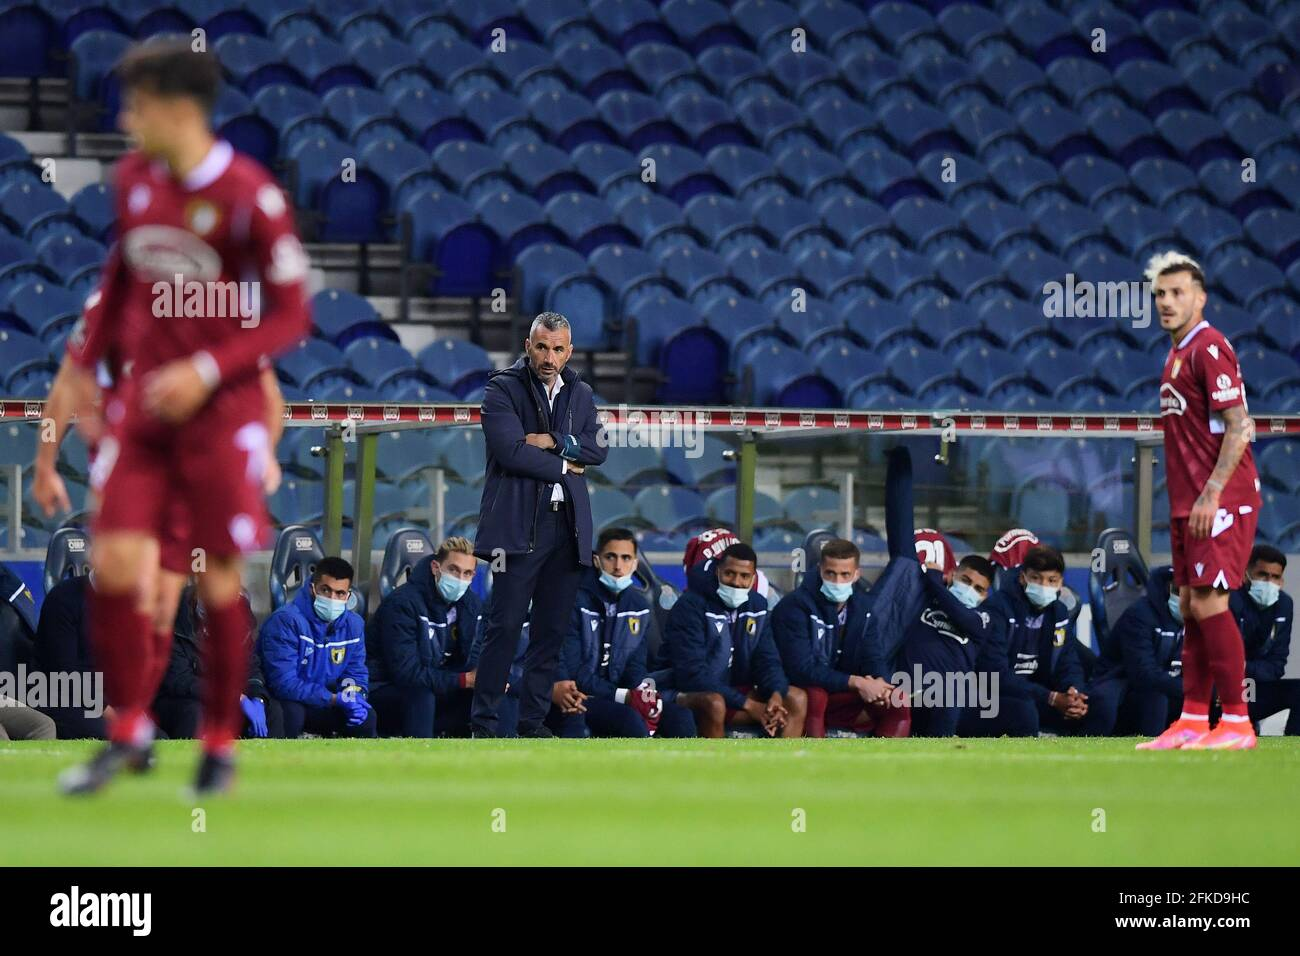 Portugal Manager High Resolution Stock Photography And Images Alamy